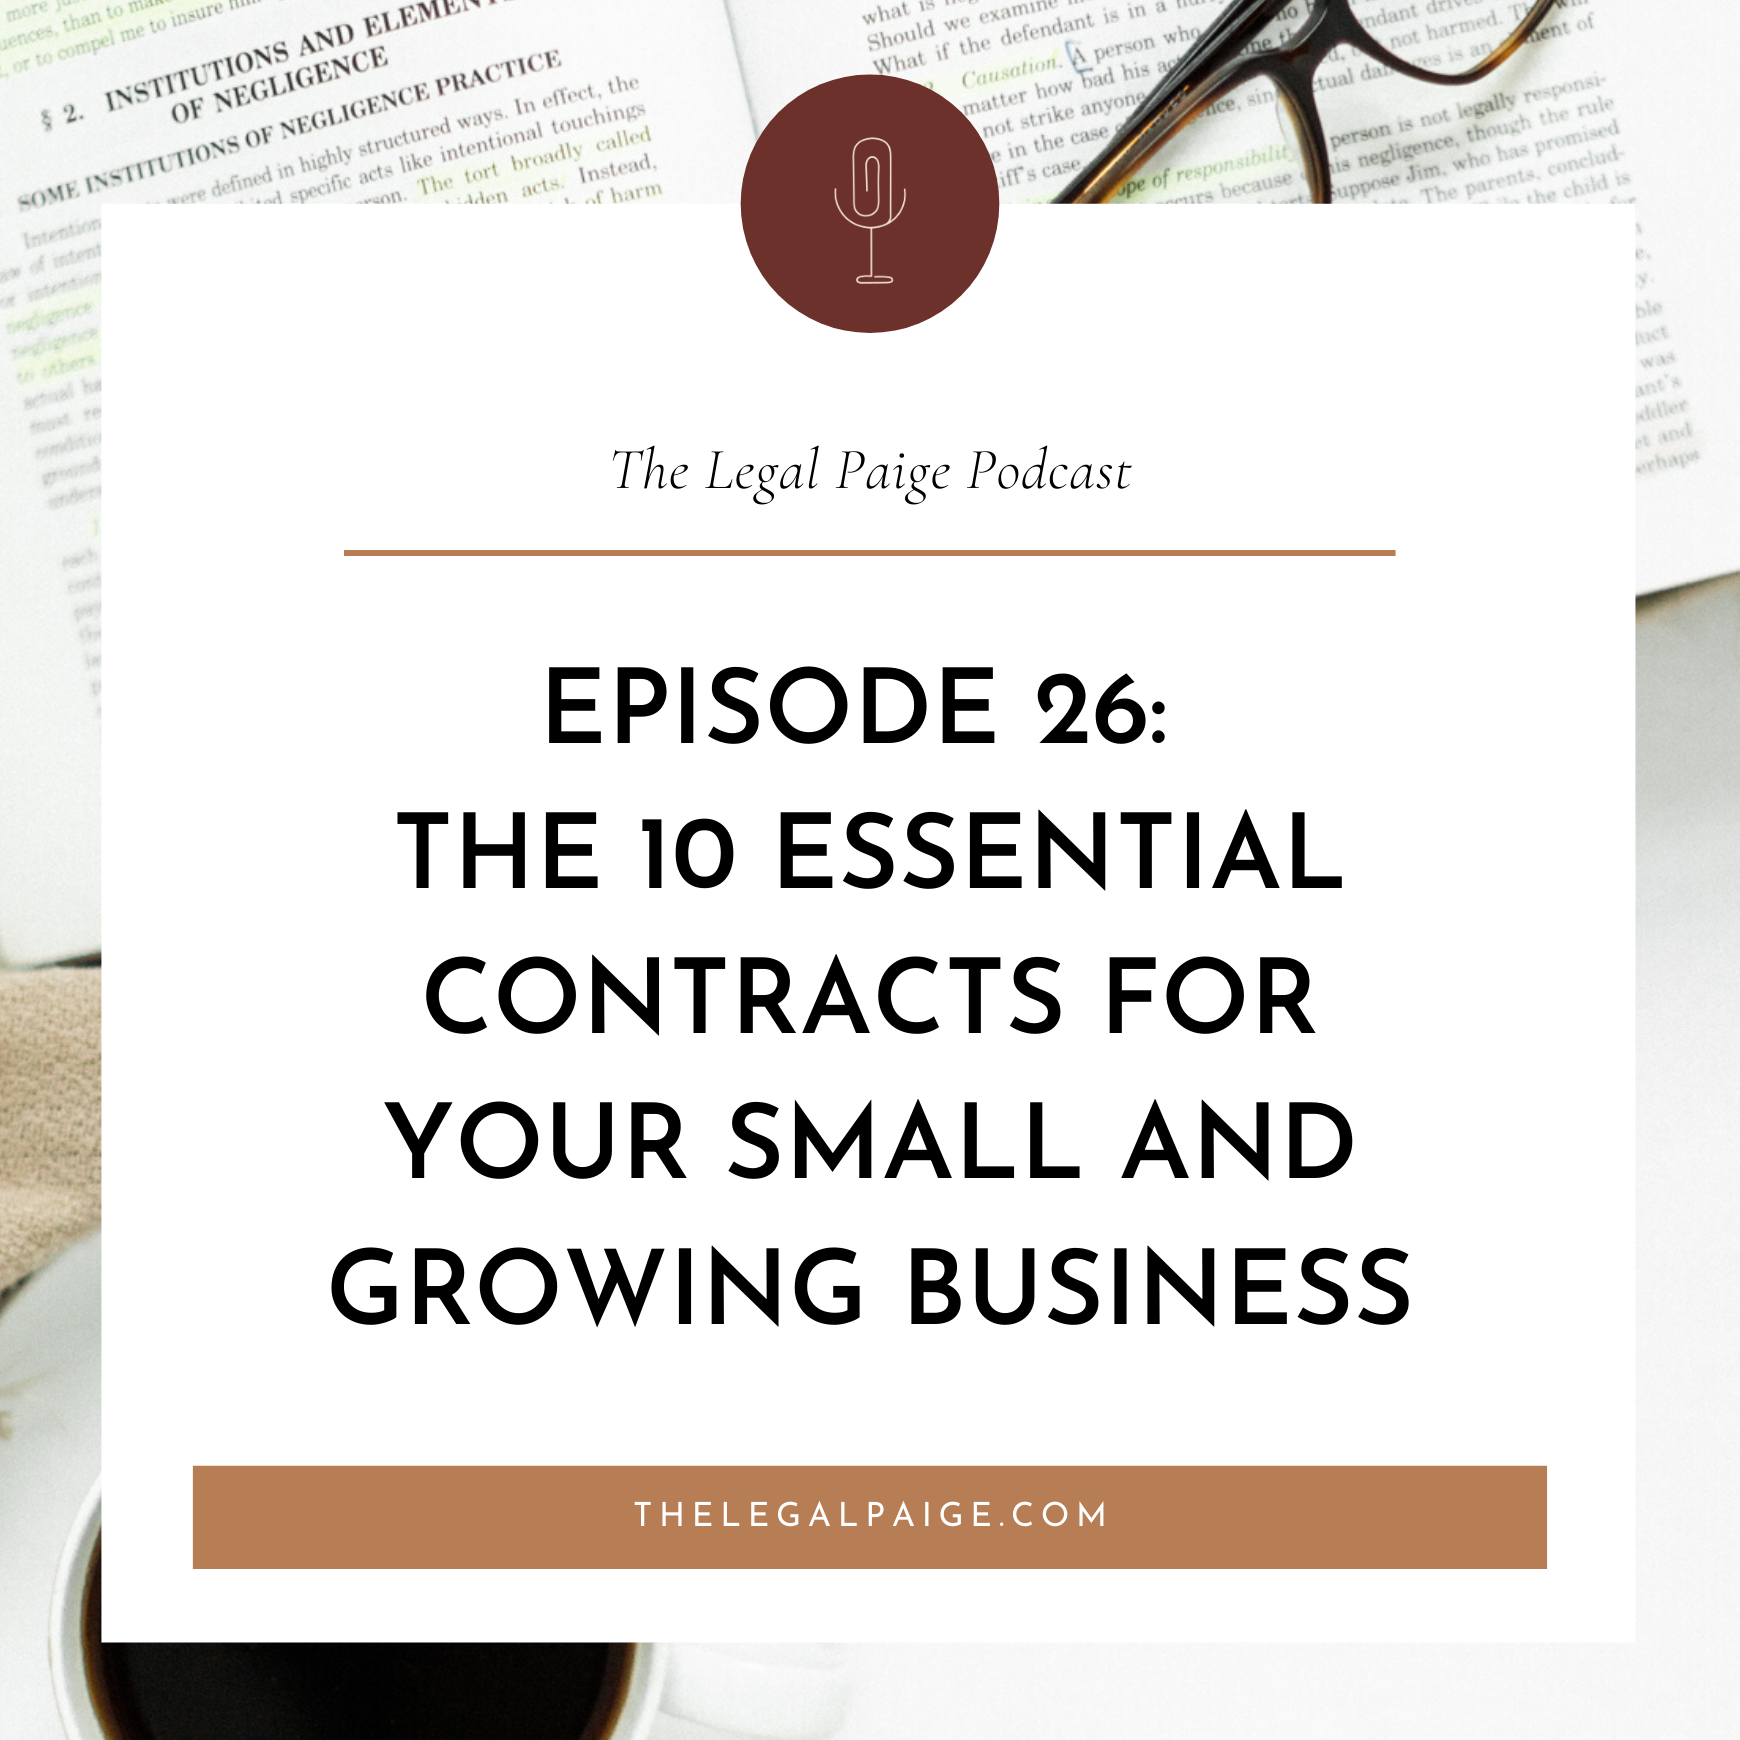 26: The 10 Essential Contracts for Your Small and Growing Business